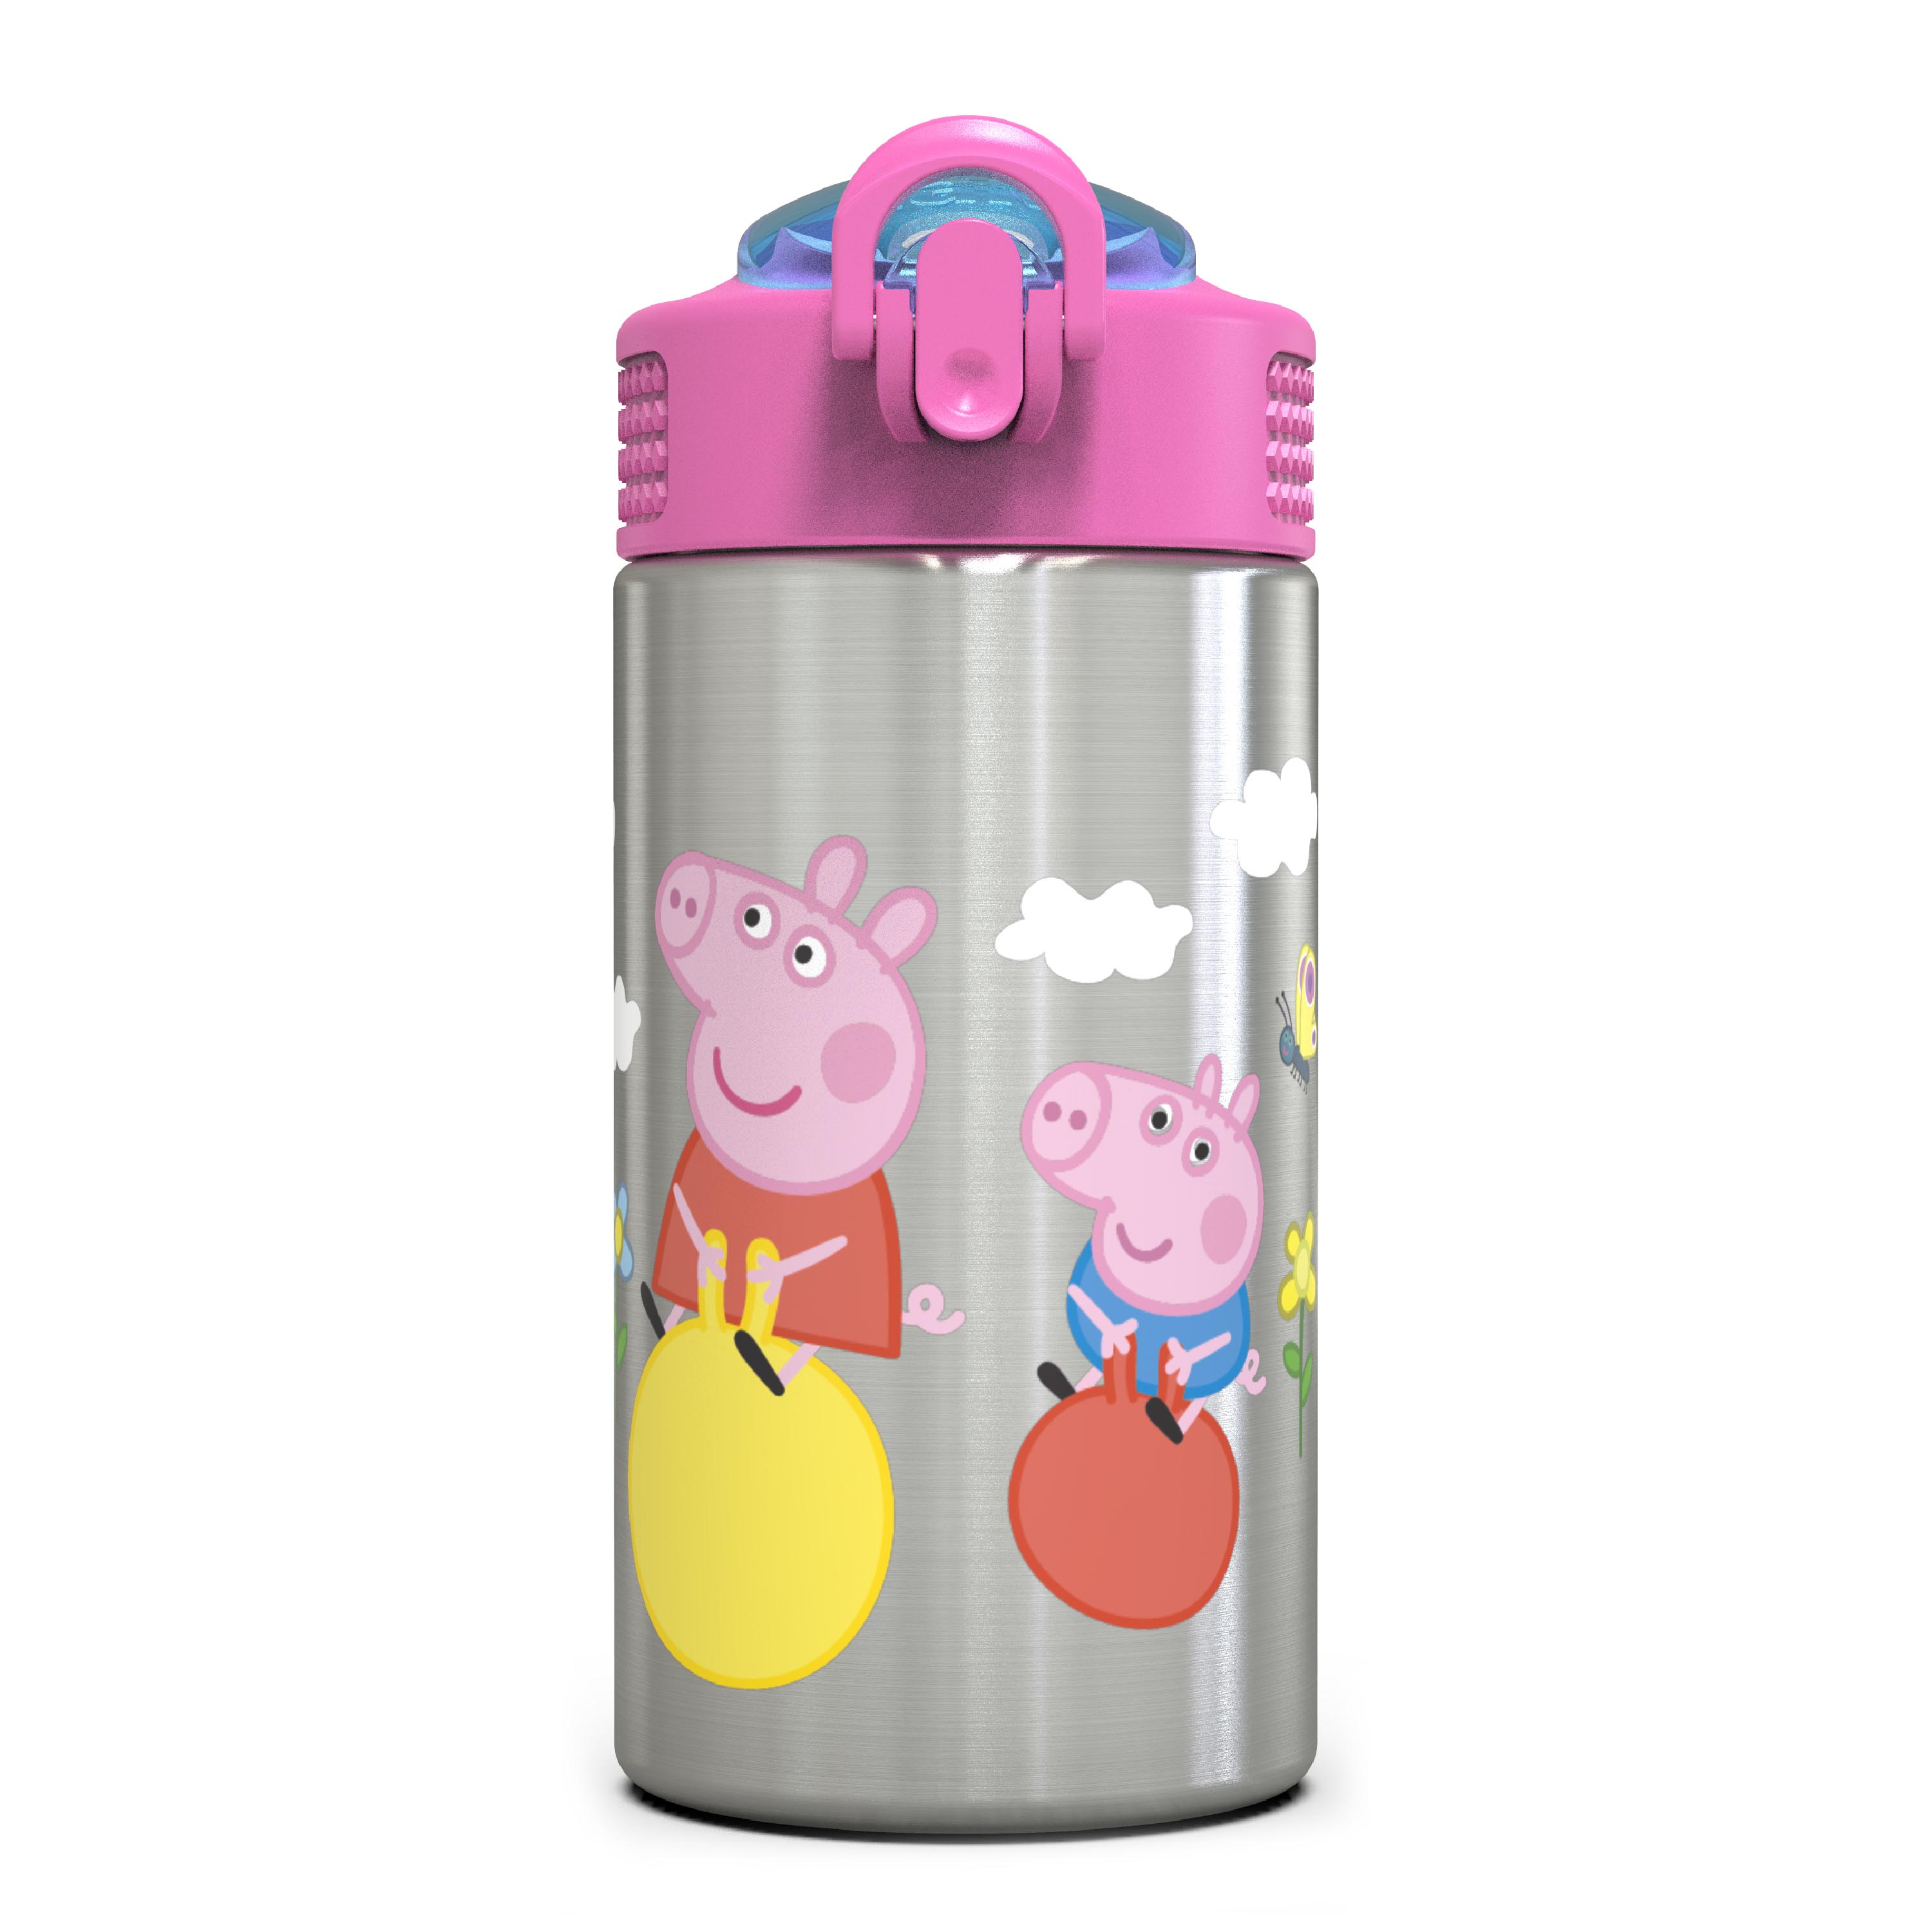 Nick Jr. 15.5 ounce Water Bottle, Peppa Pig slideshow image 1